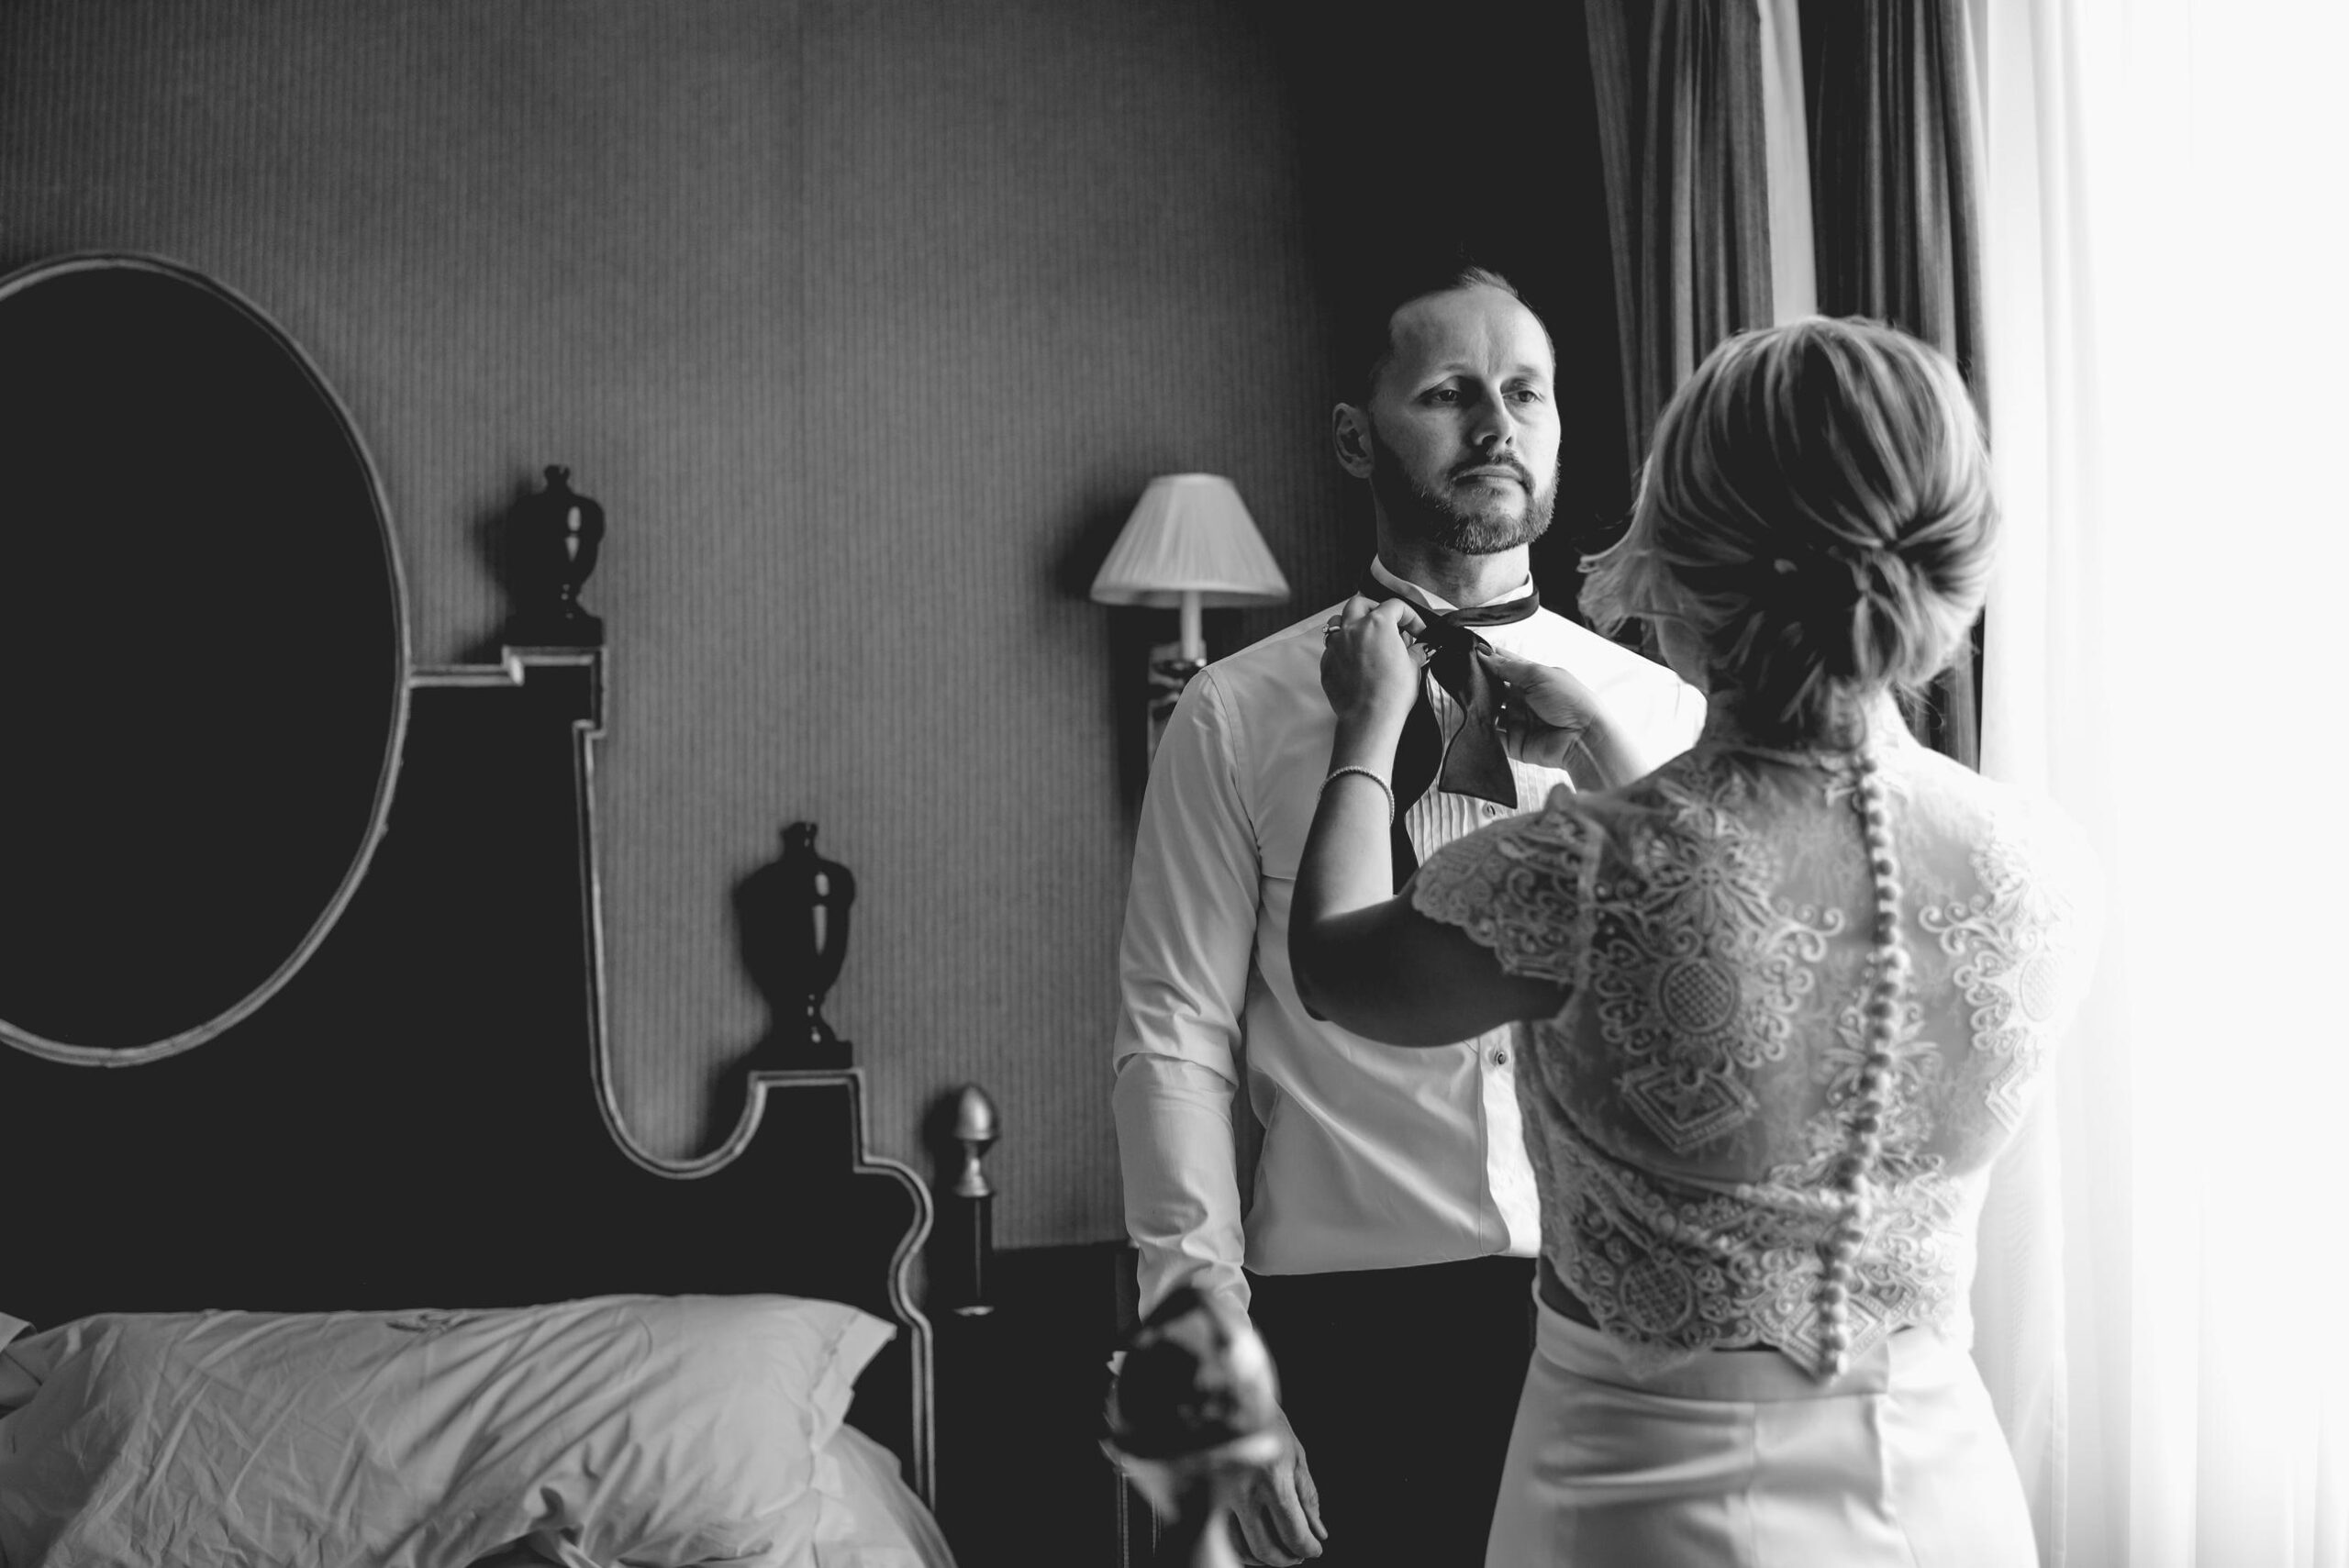 Bride and groom get ready together at their London Wedding